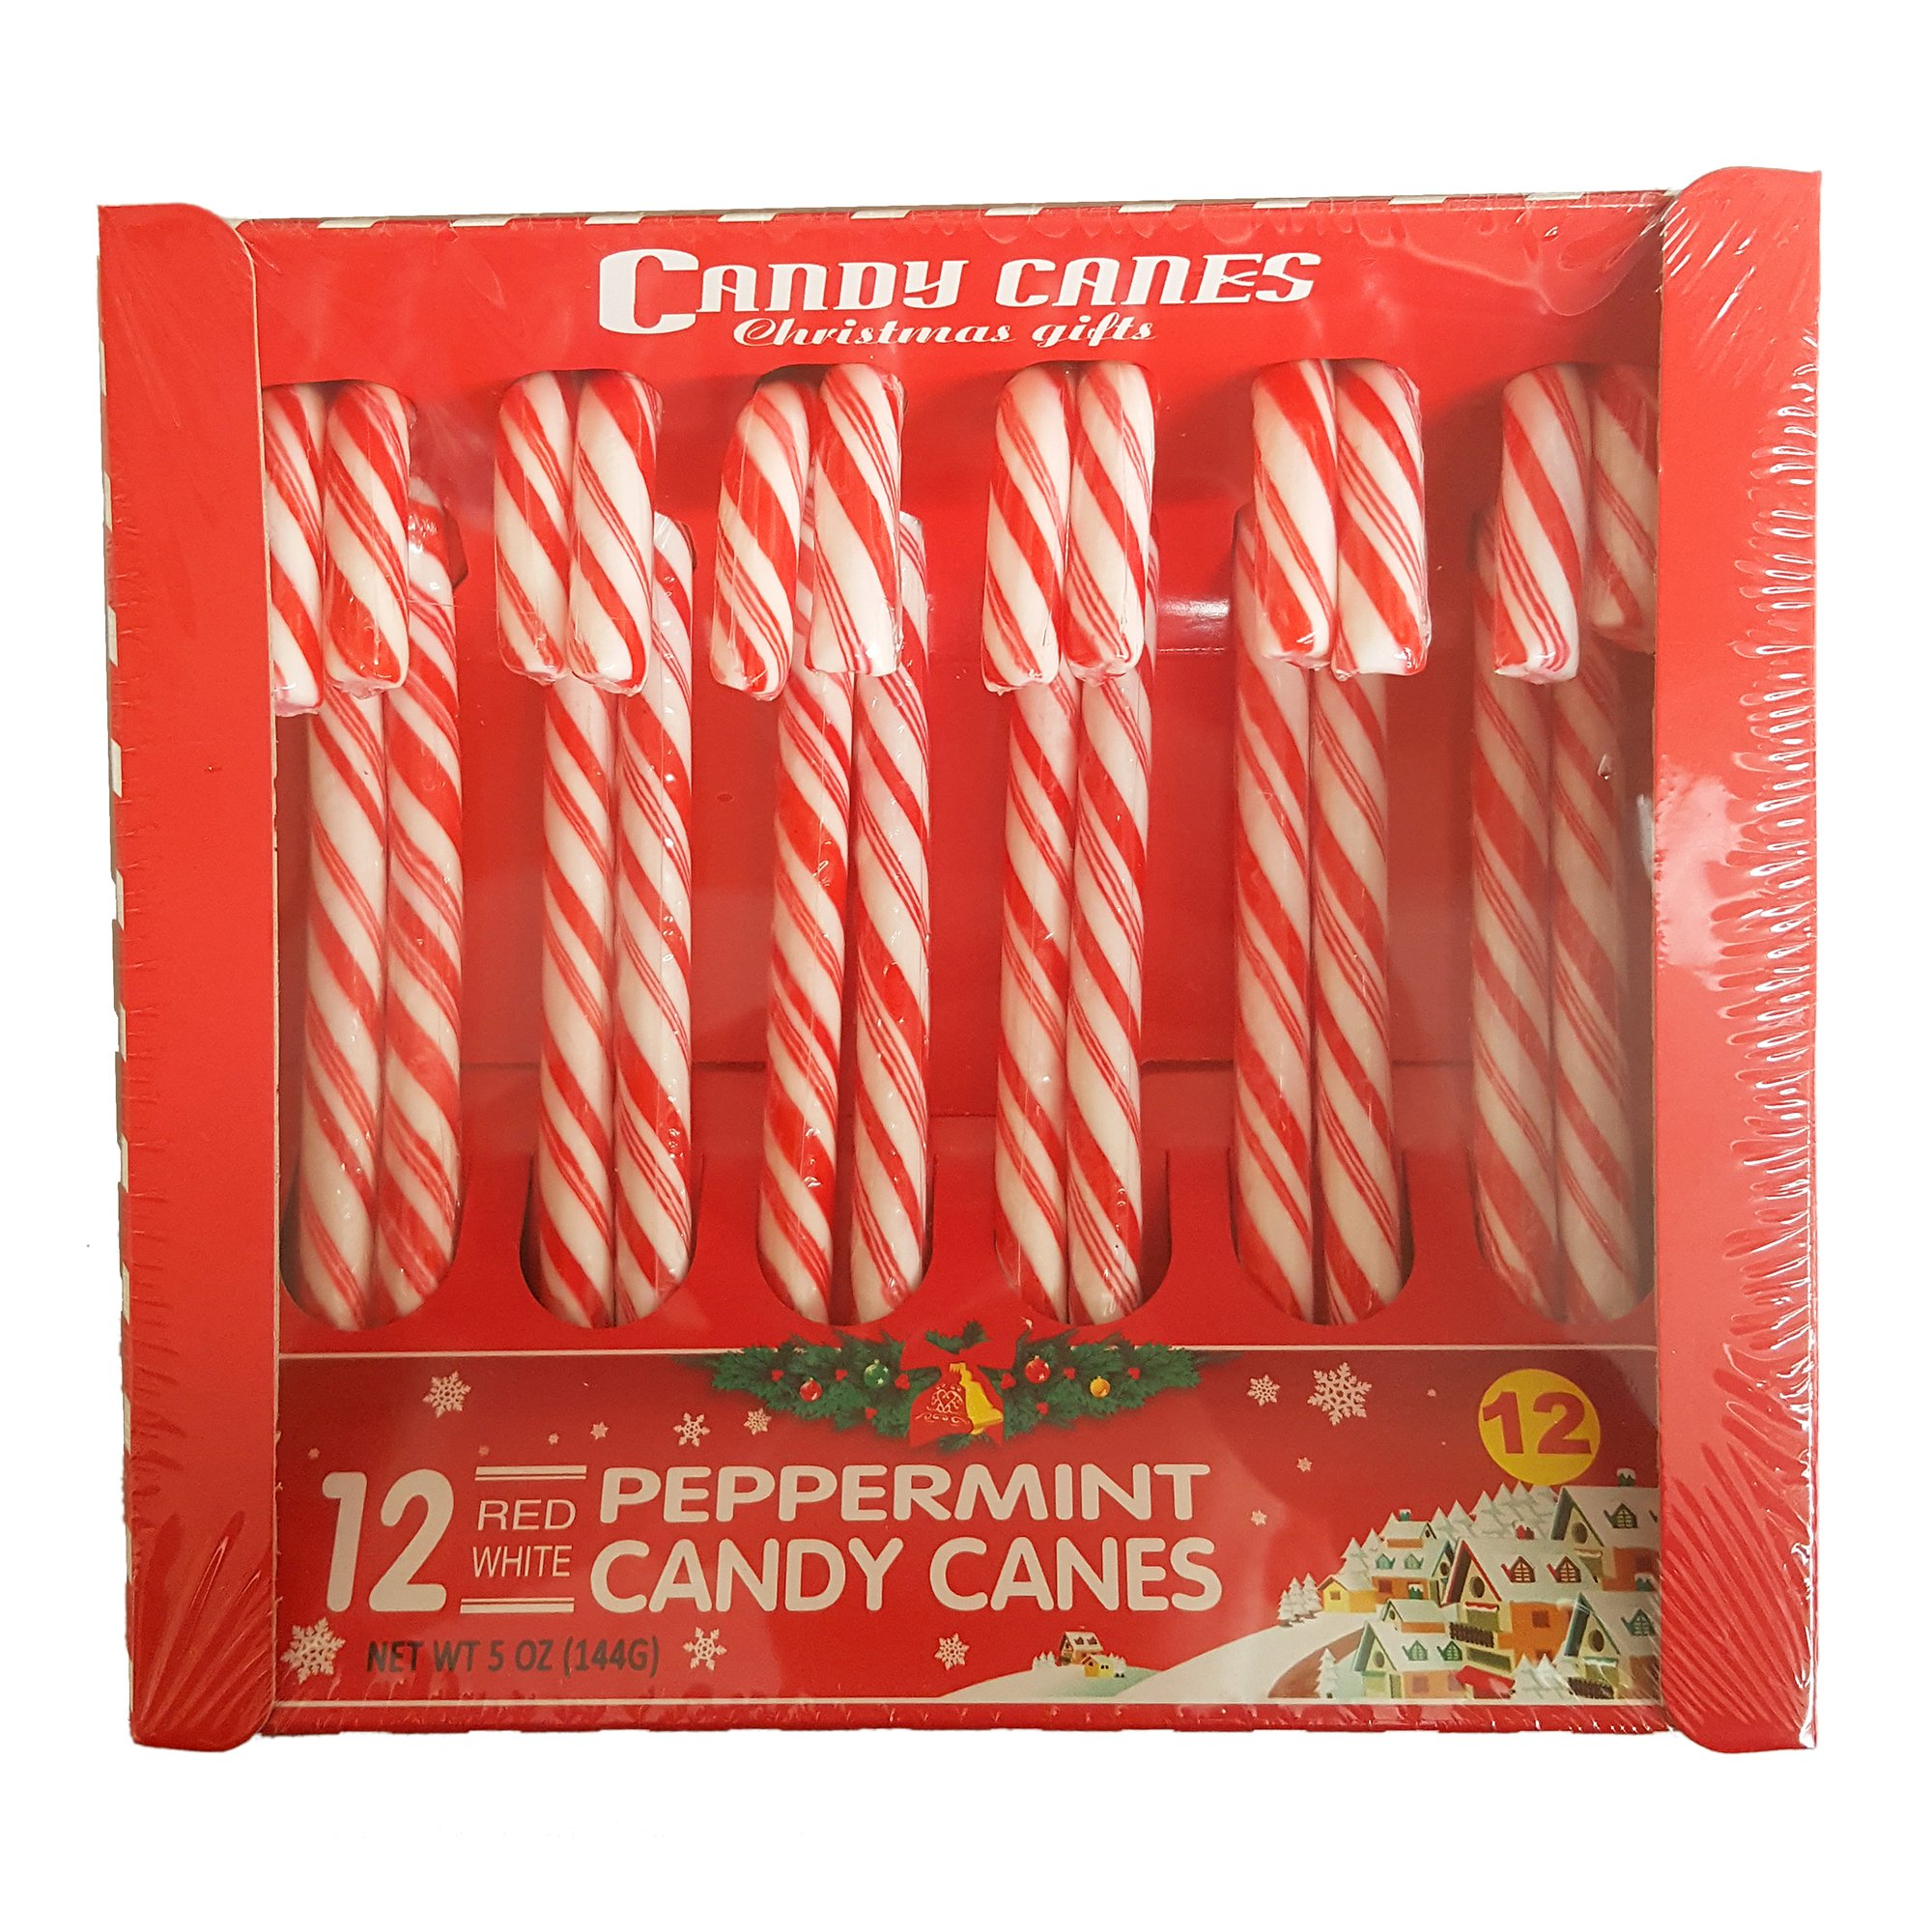 HB 12 Peppermint Christmas Gift Candy Canes